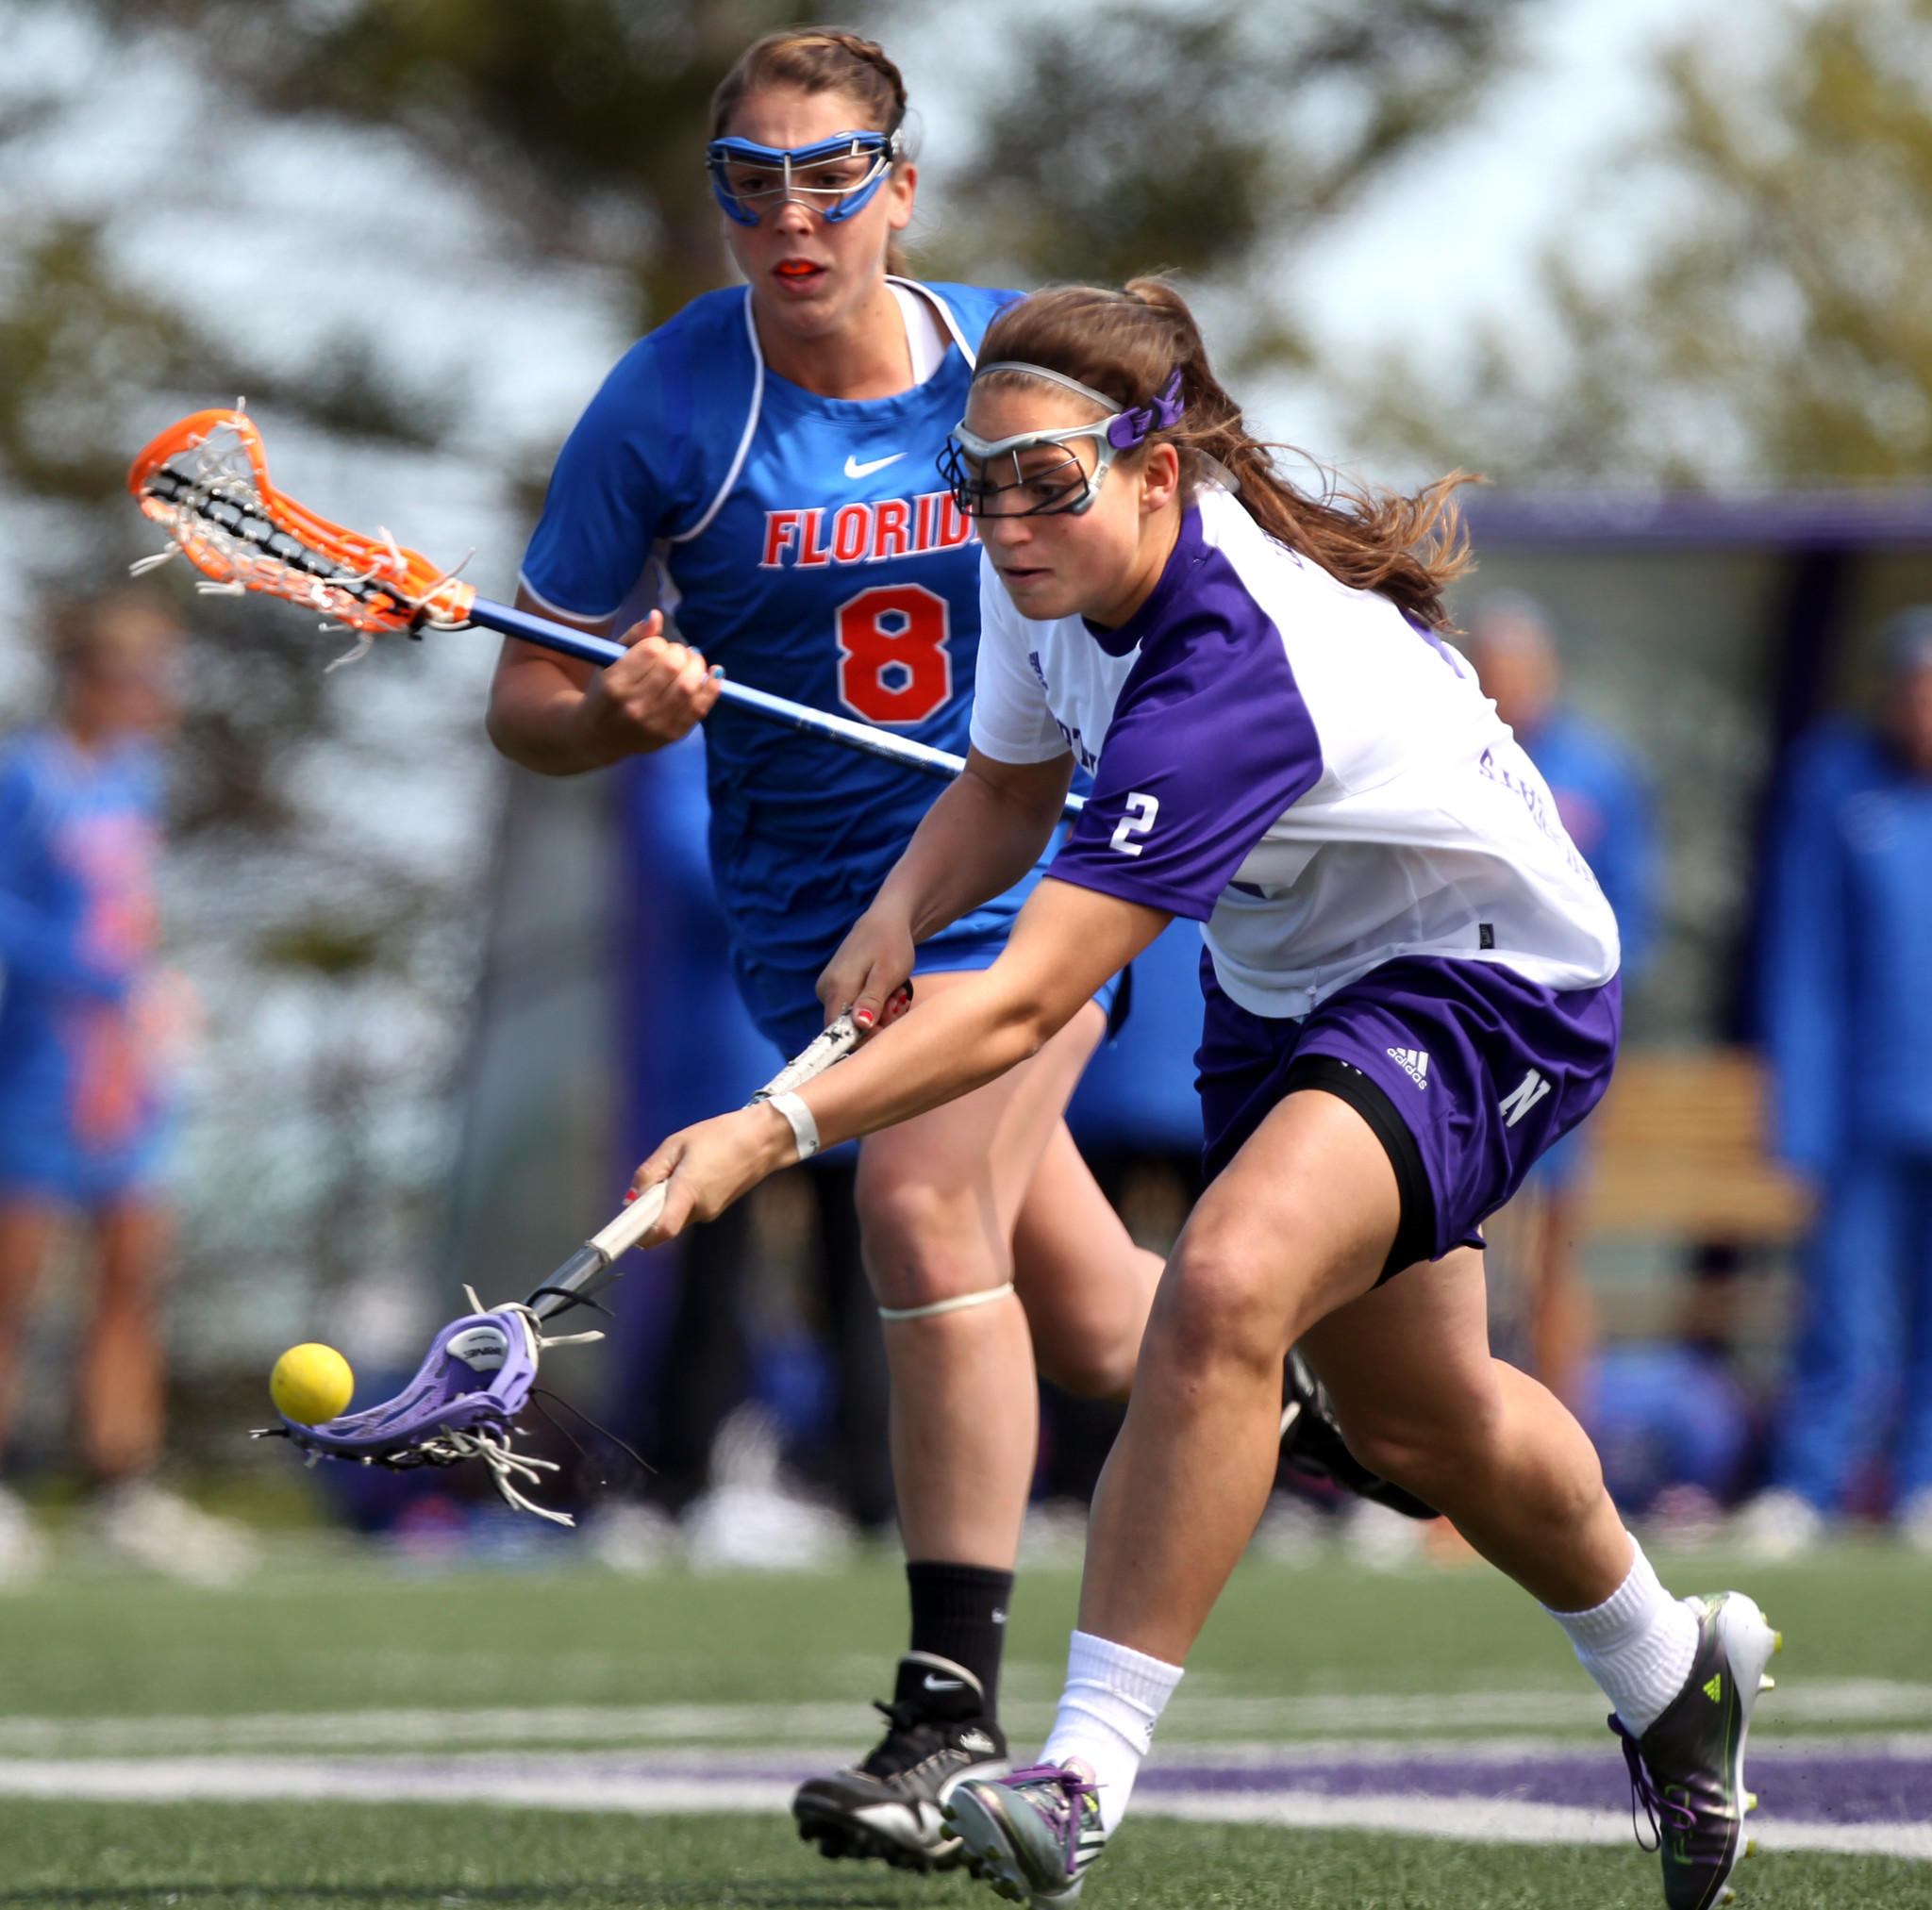 Alyssa Leonard scoops a loose ball during the 2012 season.